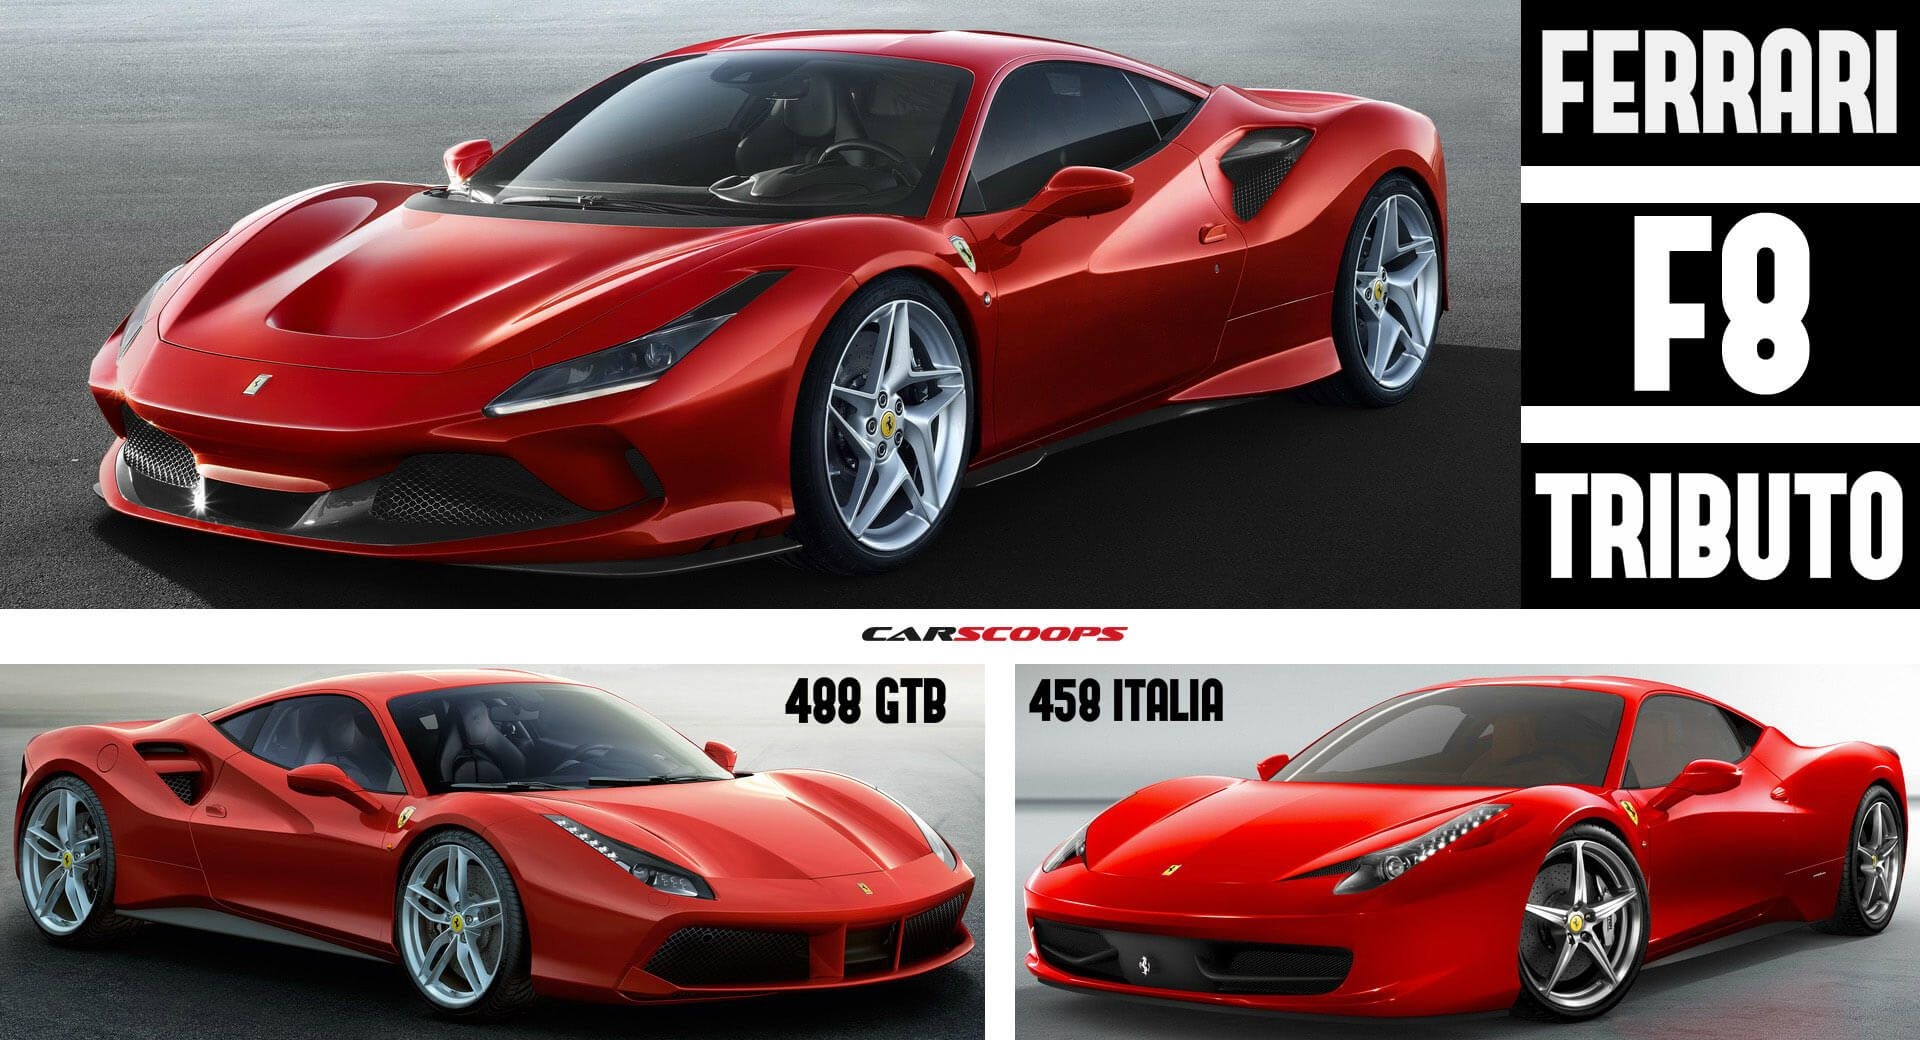 2020 Ferrari F8 Tributo Quirks And Features With Images